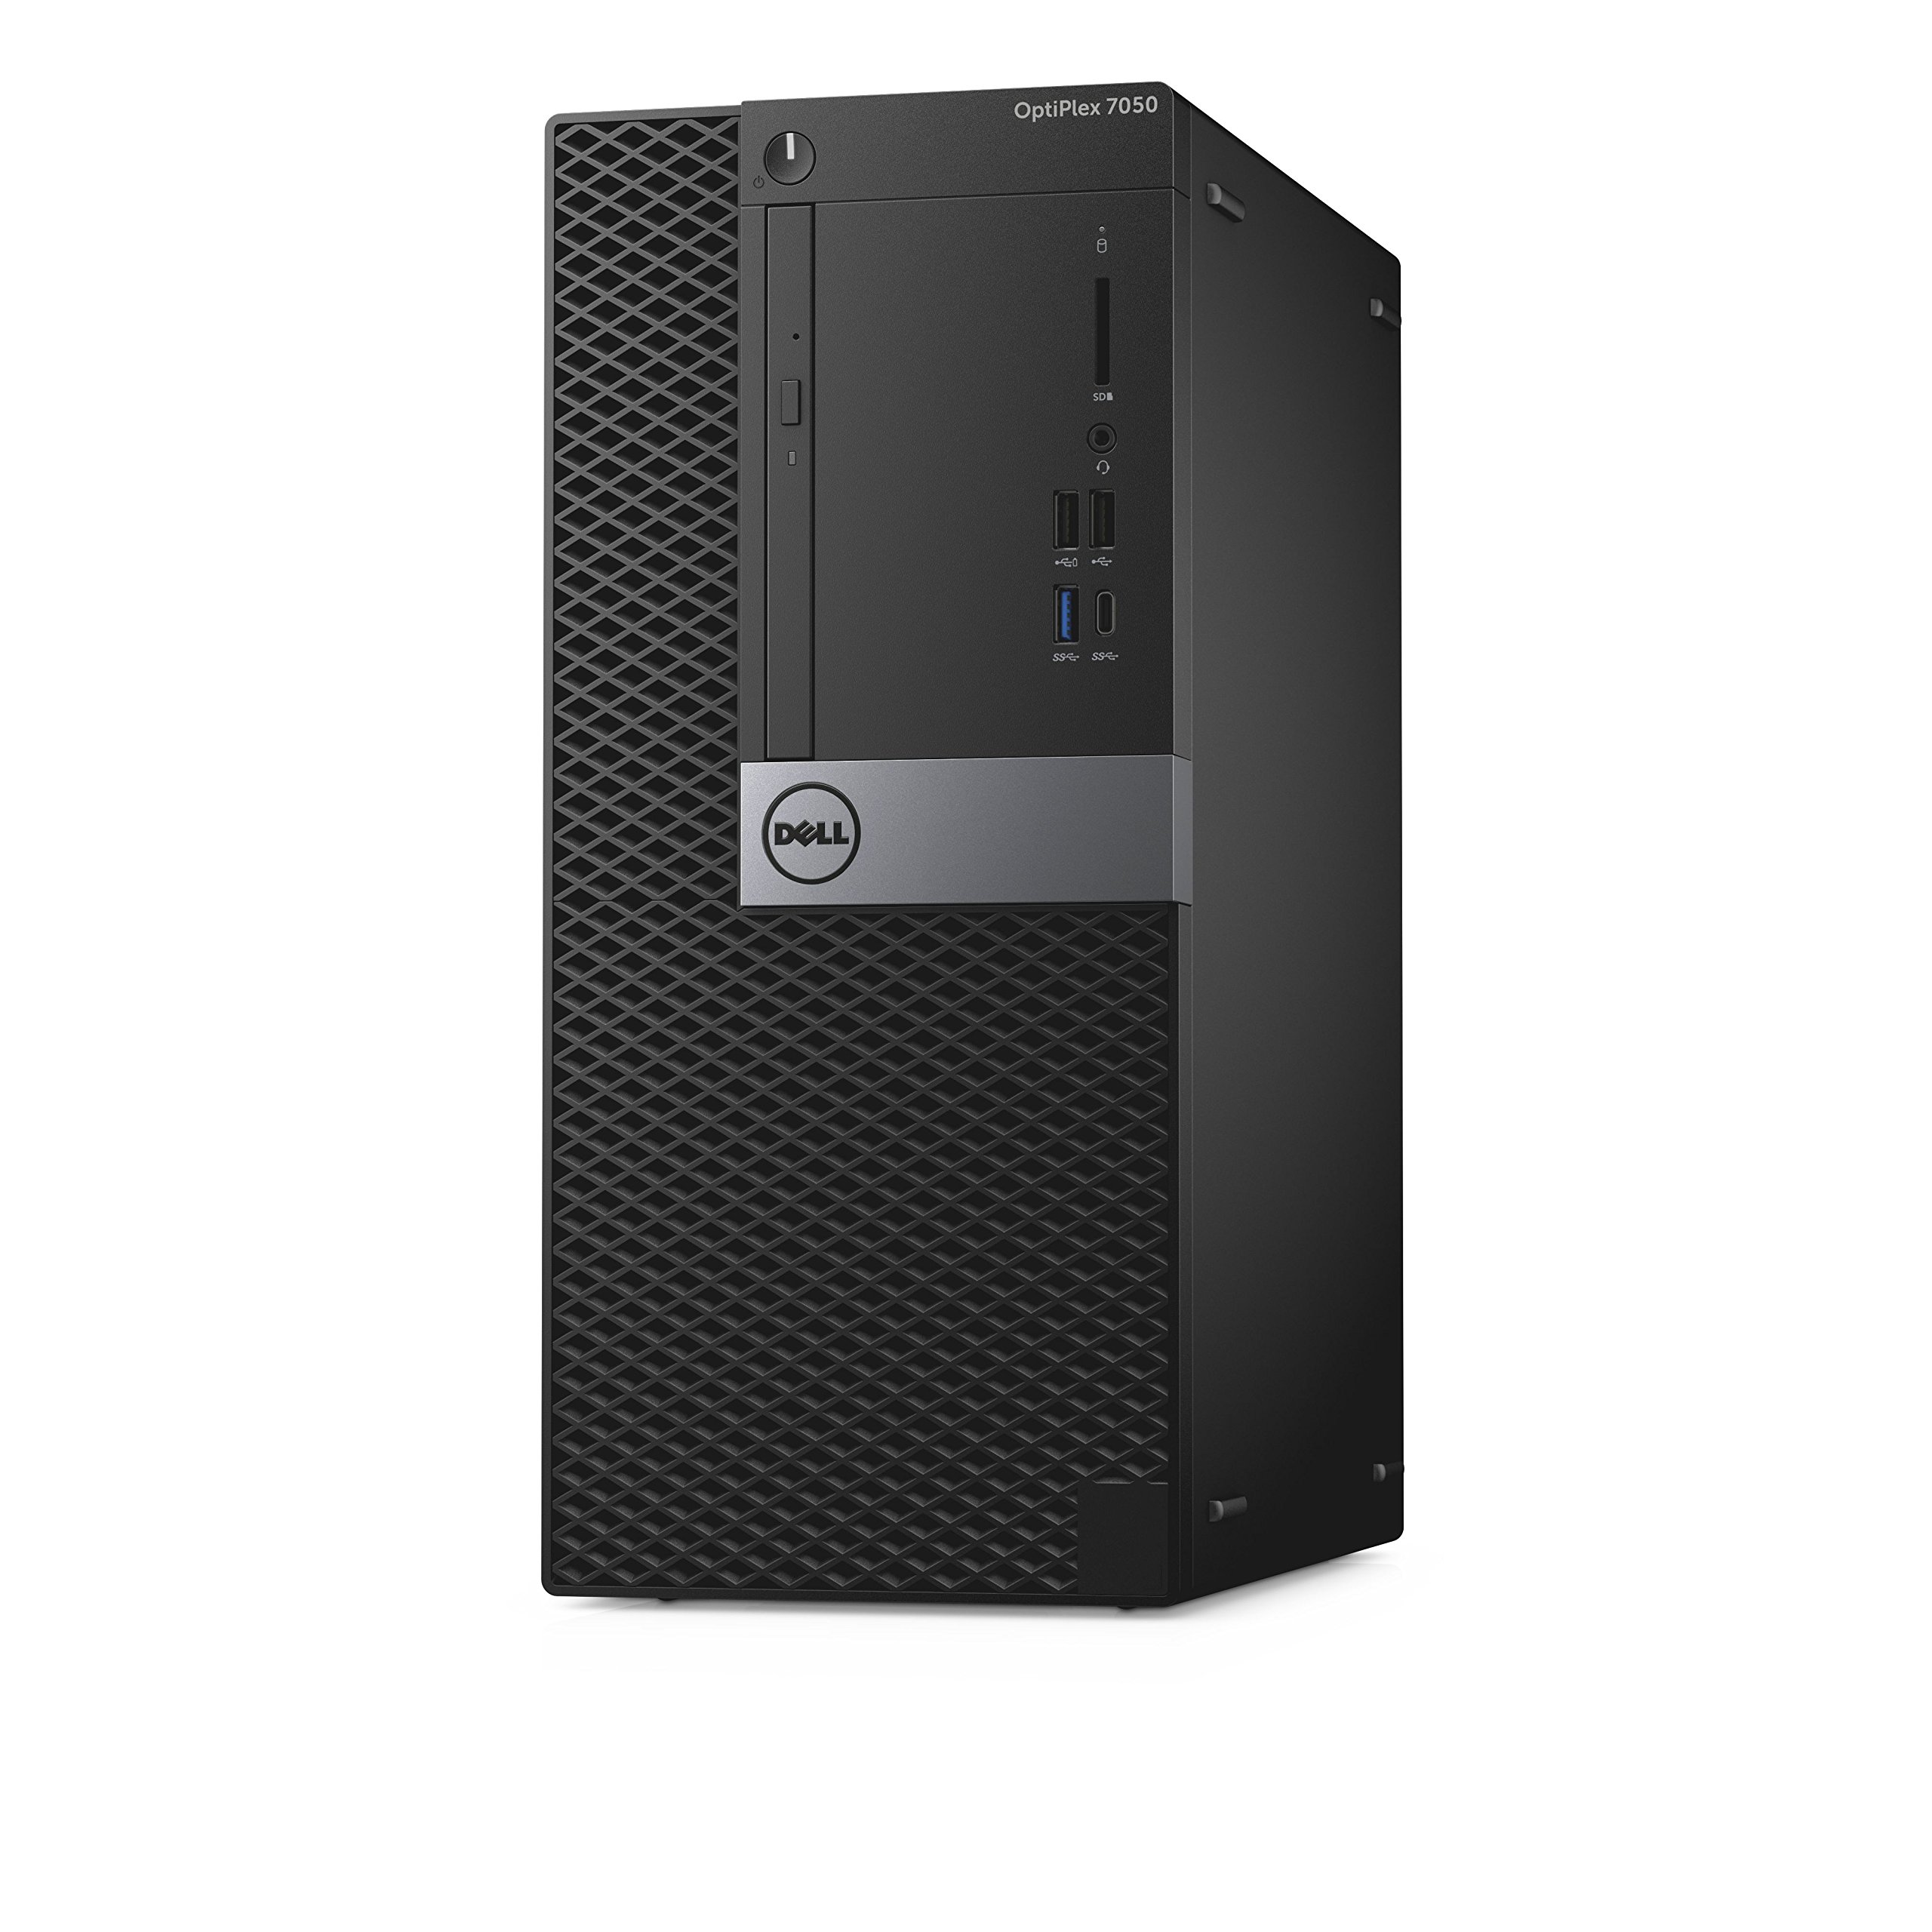 Dell OptiPlex 7050 Tower Desktop Computer, Intel Core i7-7700, 8GB DDR4, 500GB Hard Drive, Windows 10 Pro (D3HFF) by Dell